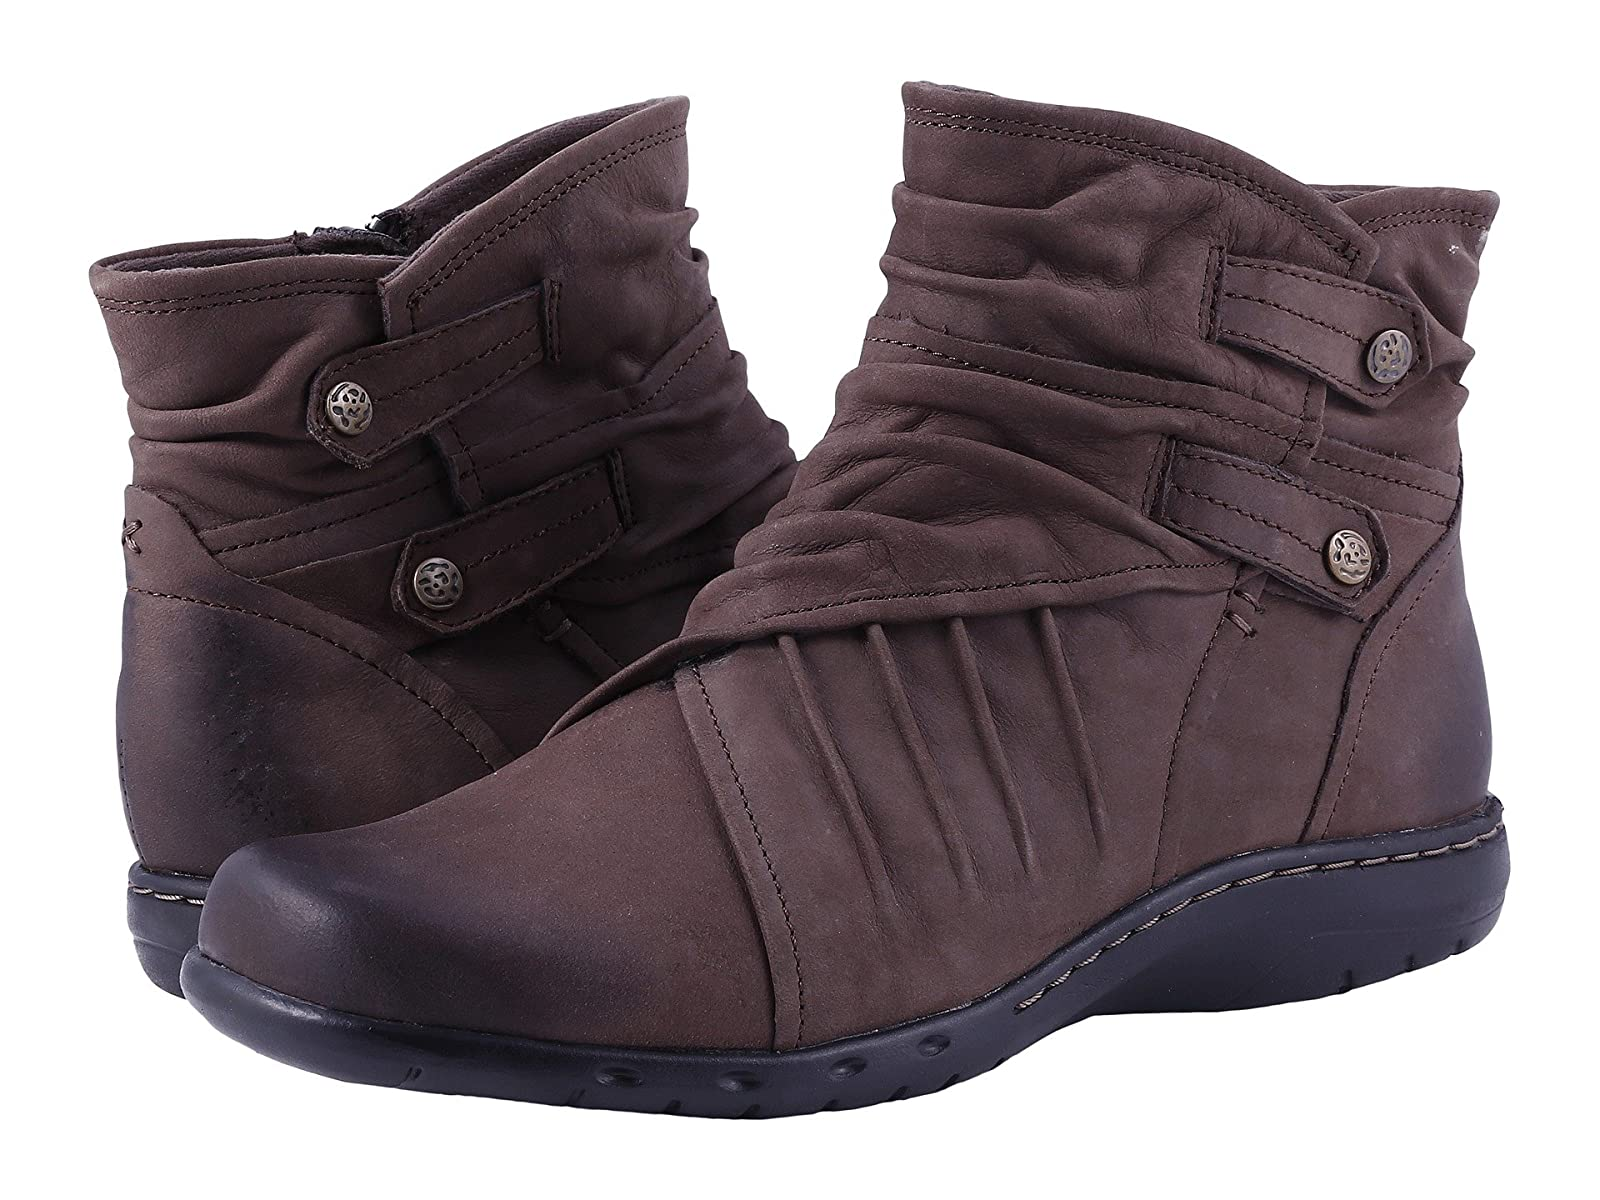 Rockport Cobb Hill Collection Cobb Hill PandoraEconomical and quality shoes